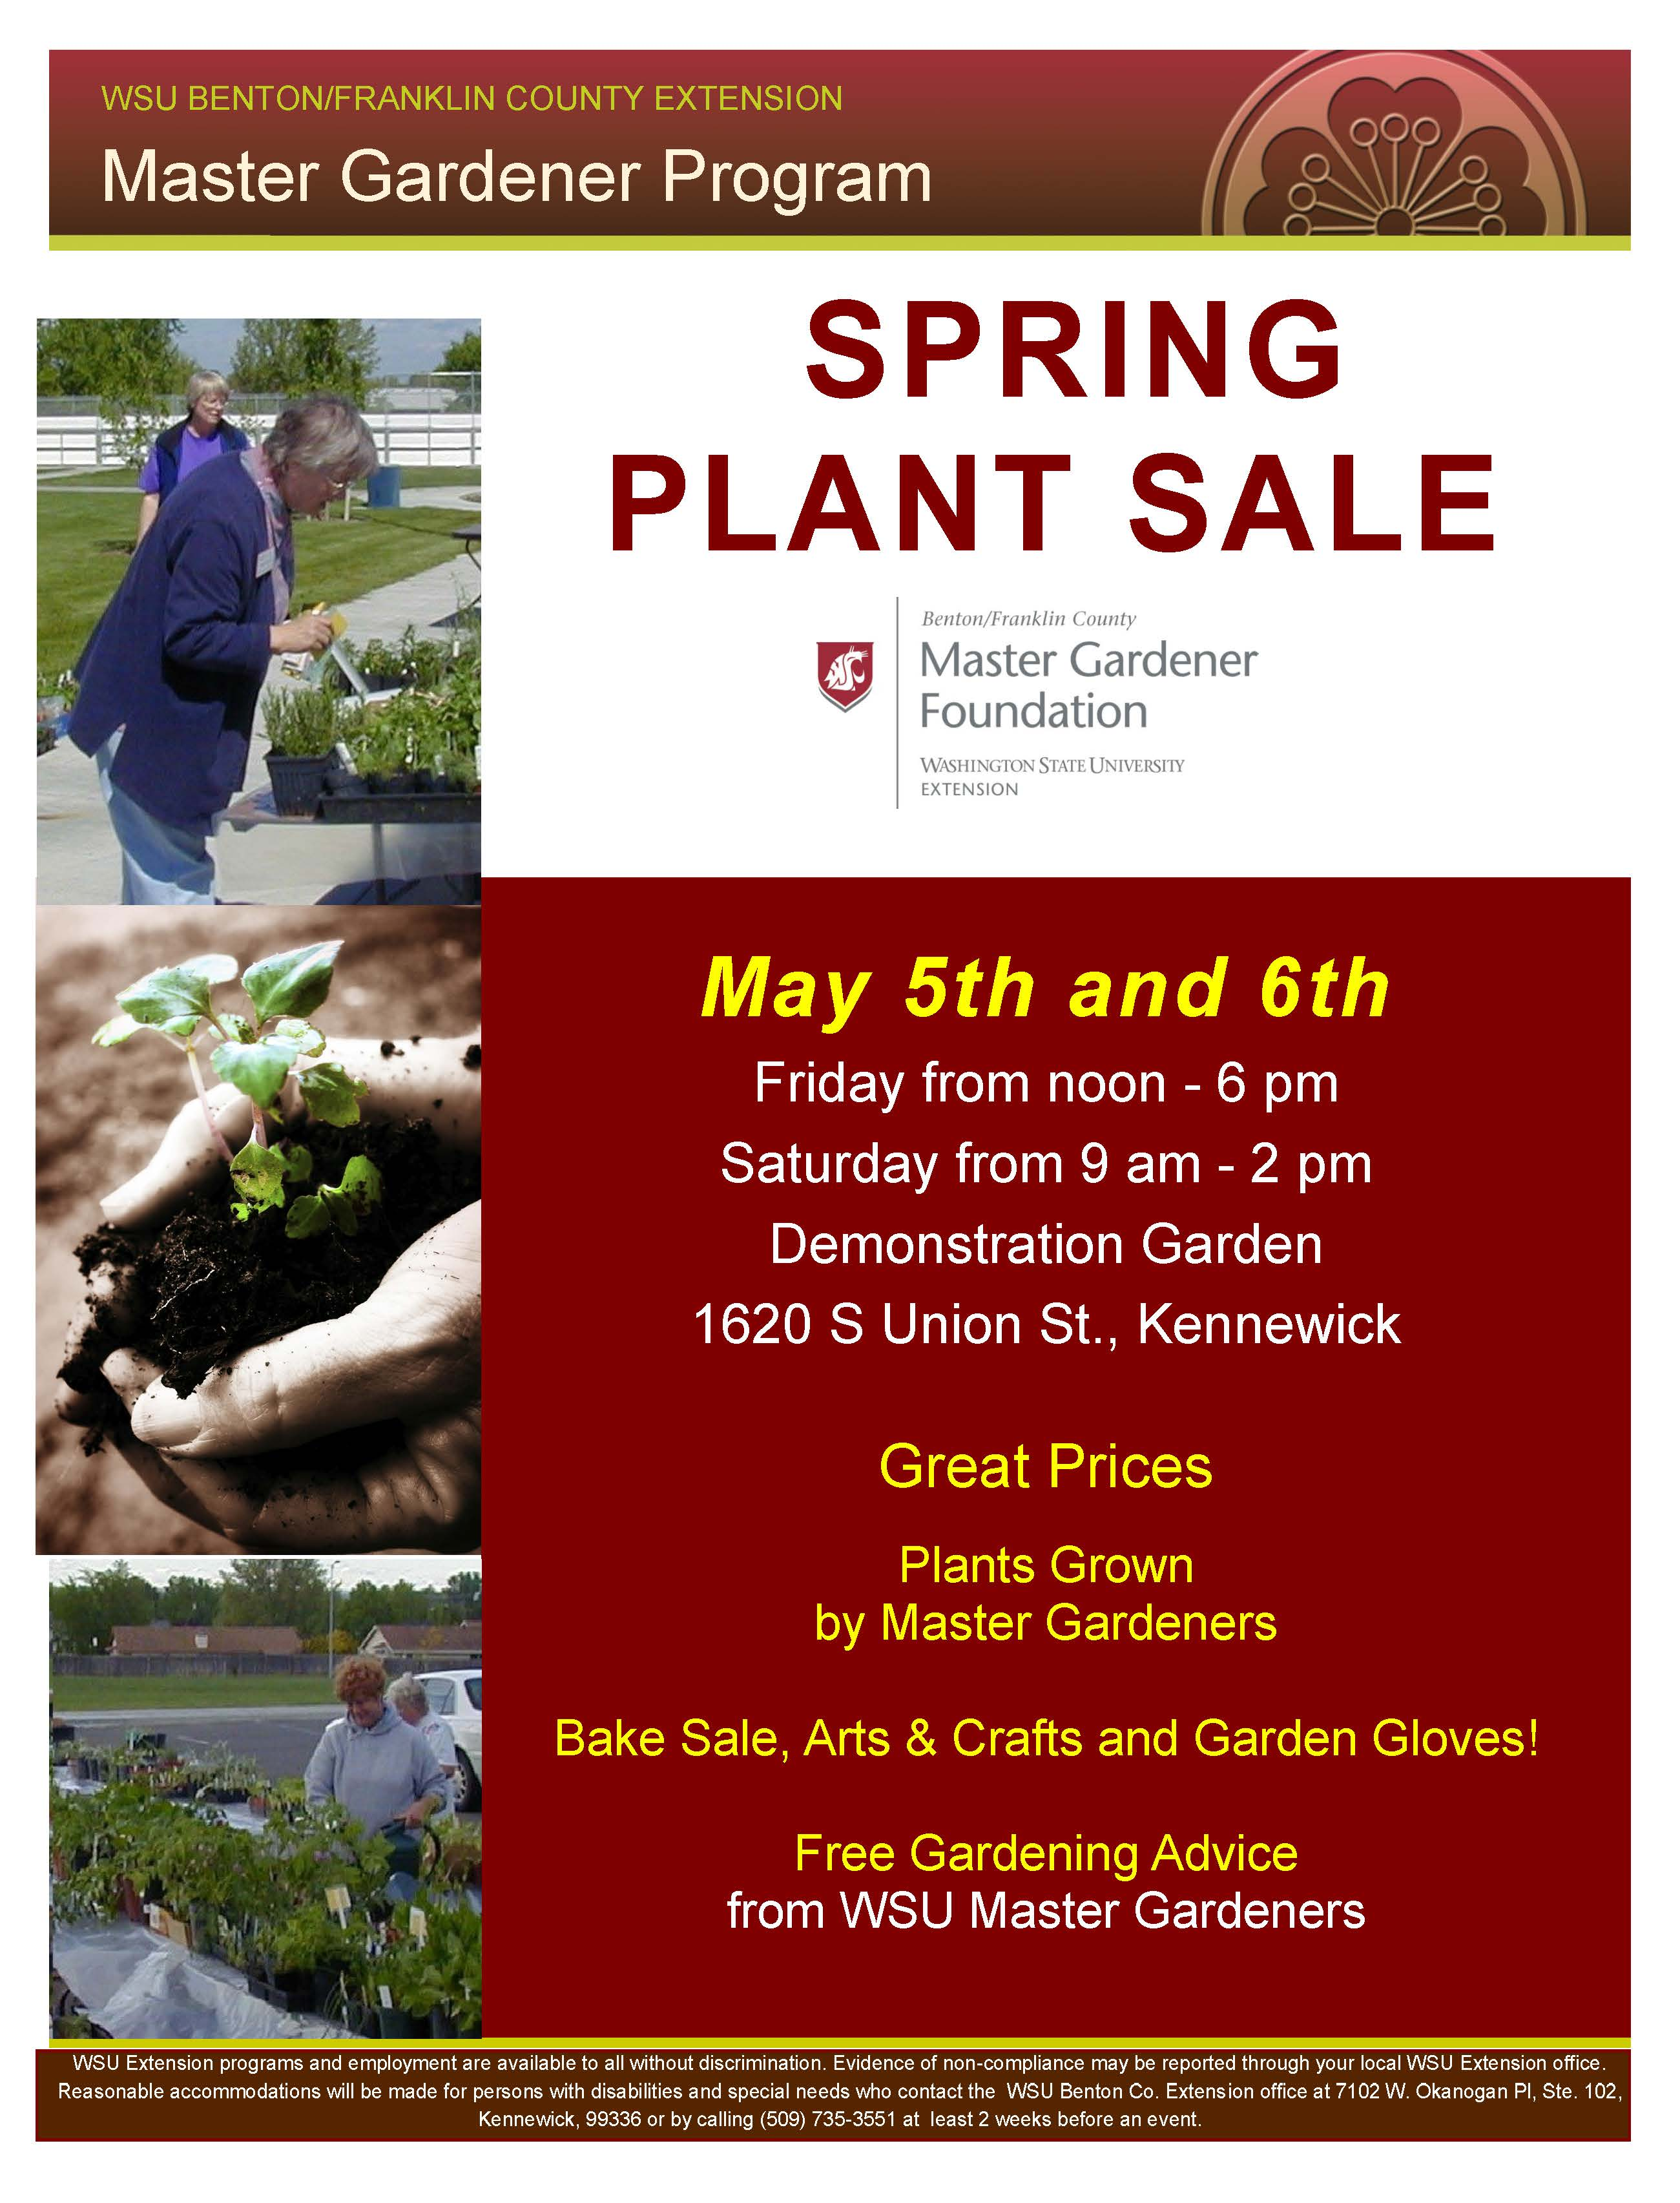 WSU Extension Master Gardener Foundation of Benton & Franklin Counties Spring Plant Sale!  Friday, May 5th, 2017 12 noon - 6pm and Saturday, May 6th, 2017 from 9am - 2pm; located at the Demonstration Garden 1620 S Union Street, Kennewick, WA.  Great prices.  Plants grown by Master Gardeners.  Also including a bake sale, arts & crafts, garden gloves and free gardening advice from WSU Master Gardeners.  Extension programs and employment are available to all without discrimination.  Evidence of non-compliance may be reported through your local WSU Extension office.  Reasonable accommodations will be made for persons with disabilities and special needs who contact the WSU Benton County Extension office at 7102 W. Okanogan Place, Suite 102, Kennewick, WA 99336 or by calling 509-735-3551 at least two weeks before an event.